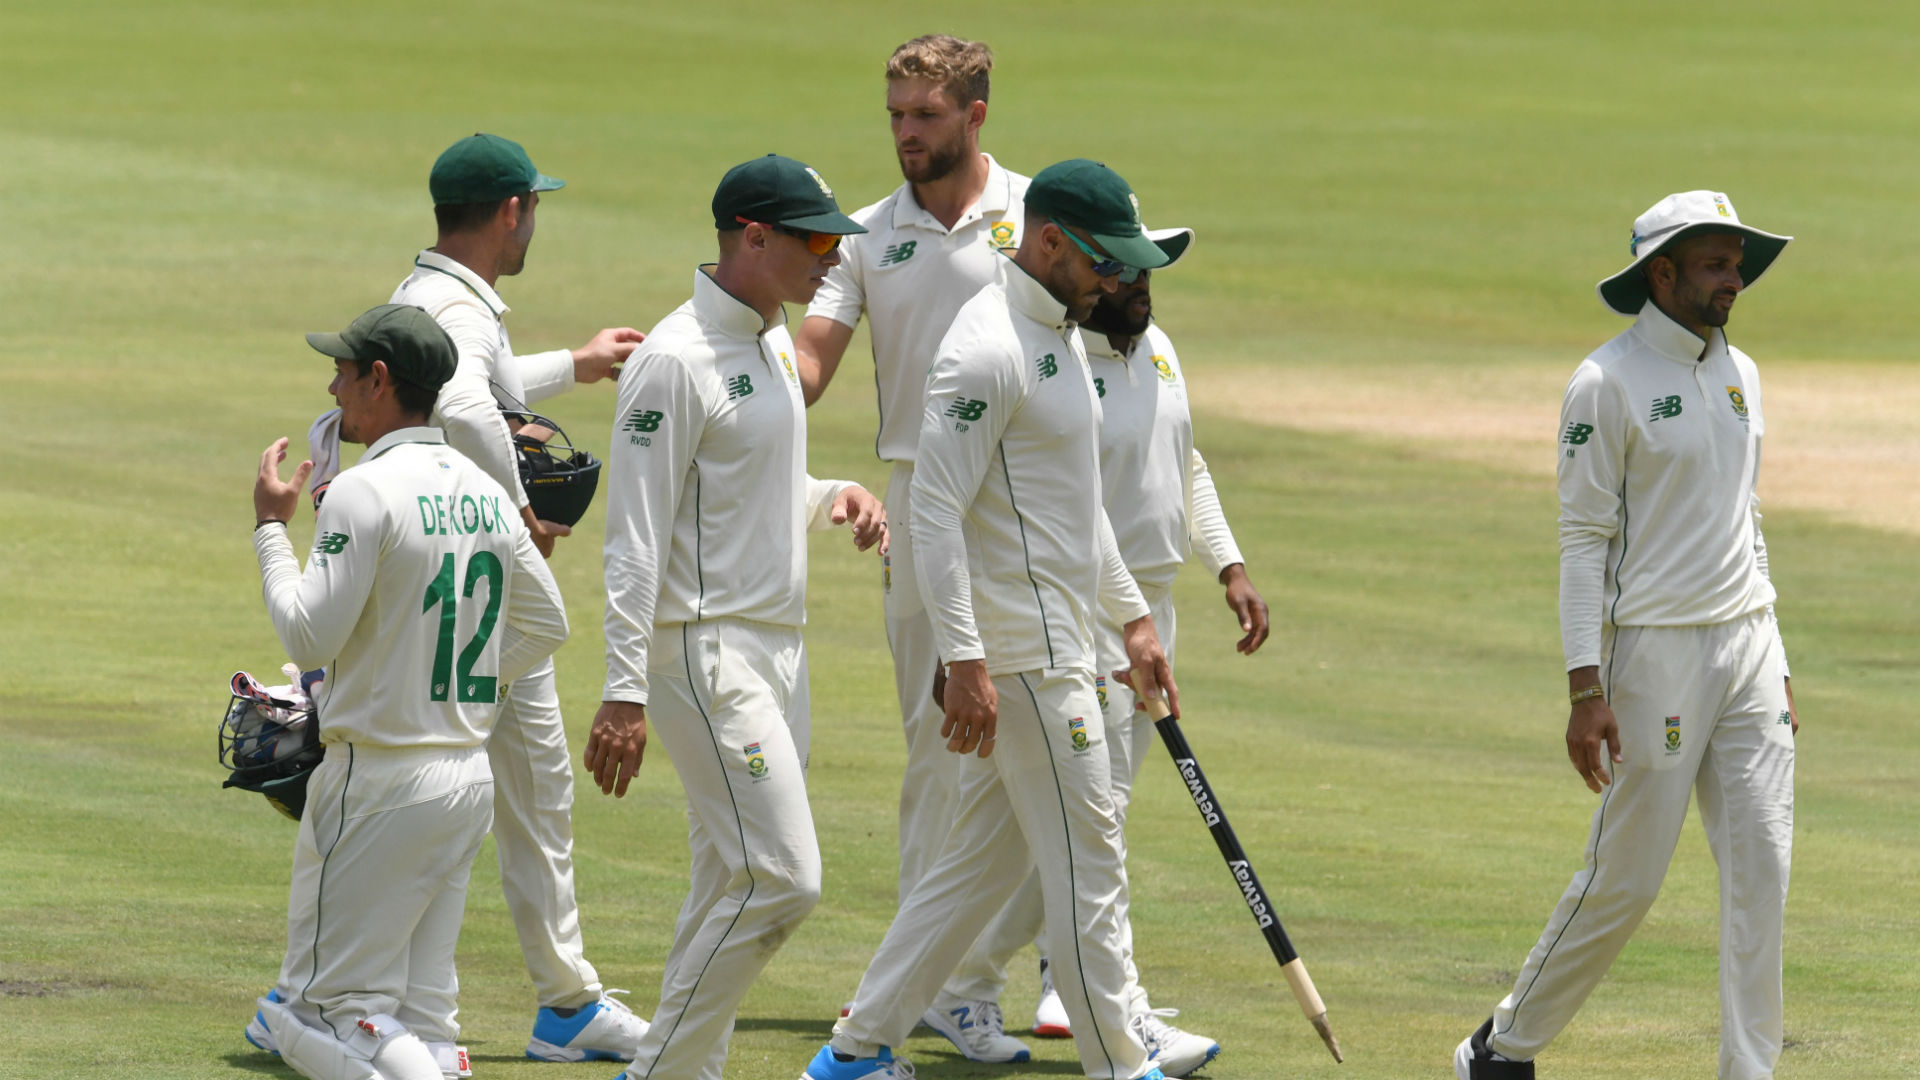 South Africa aim to double up in Johannesburg against depleted Sri Lanka